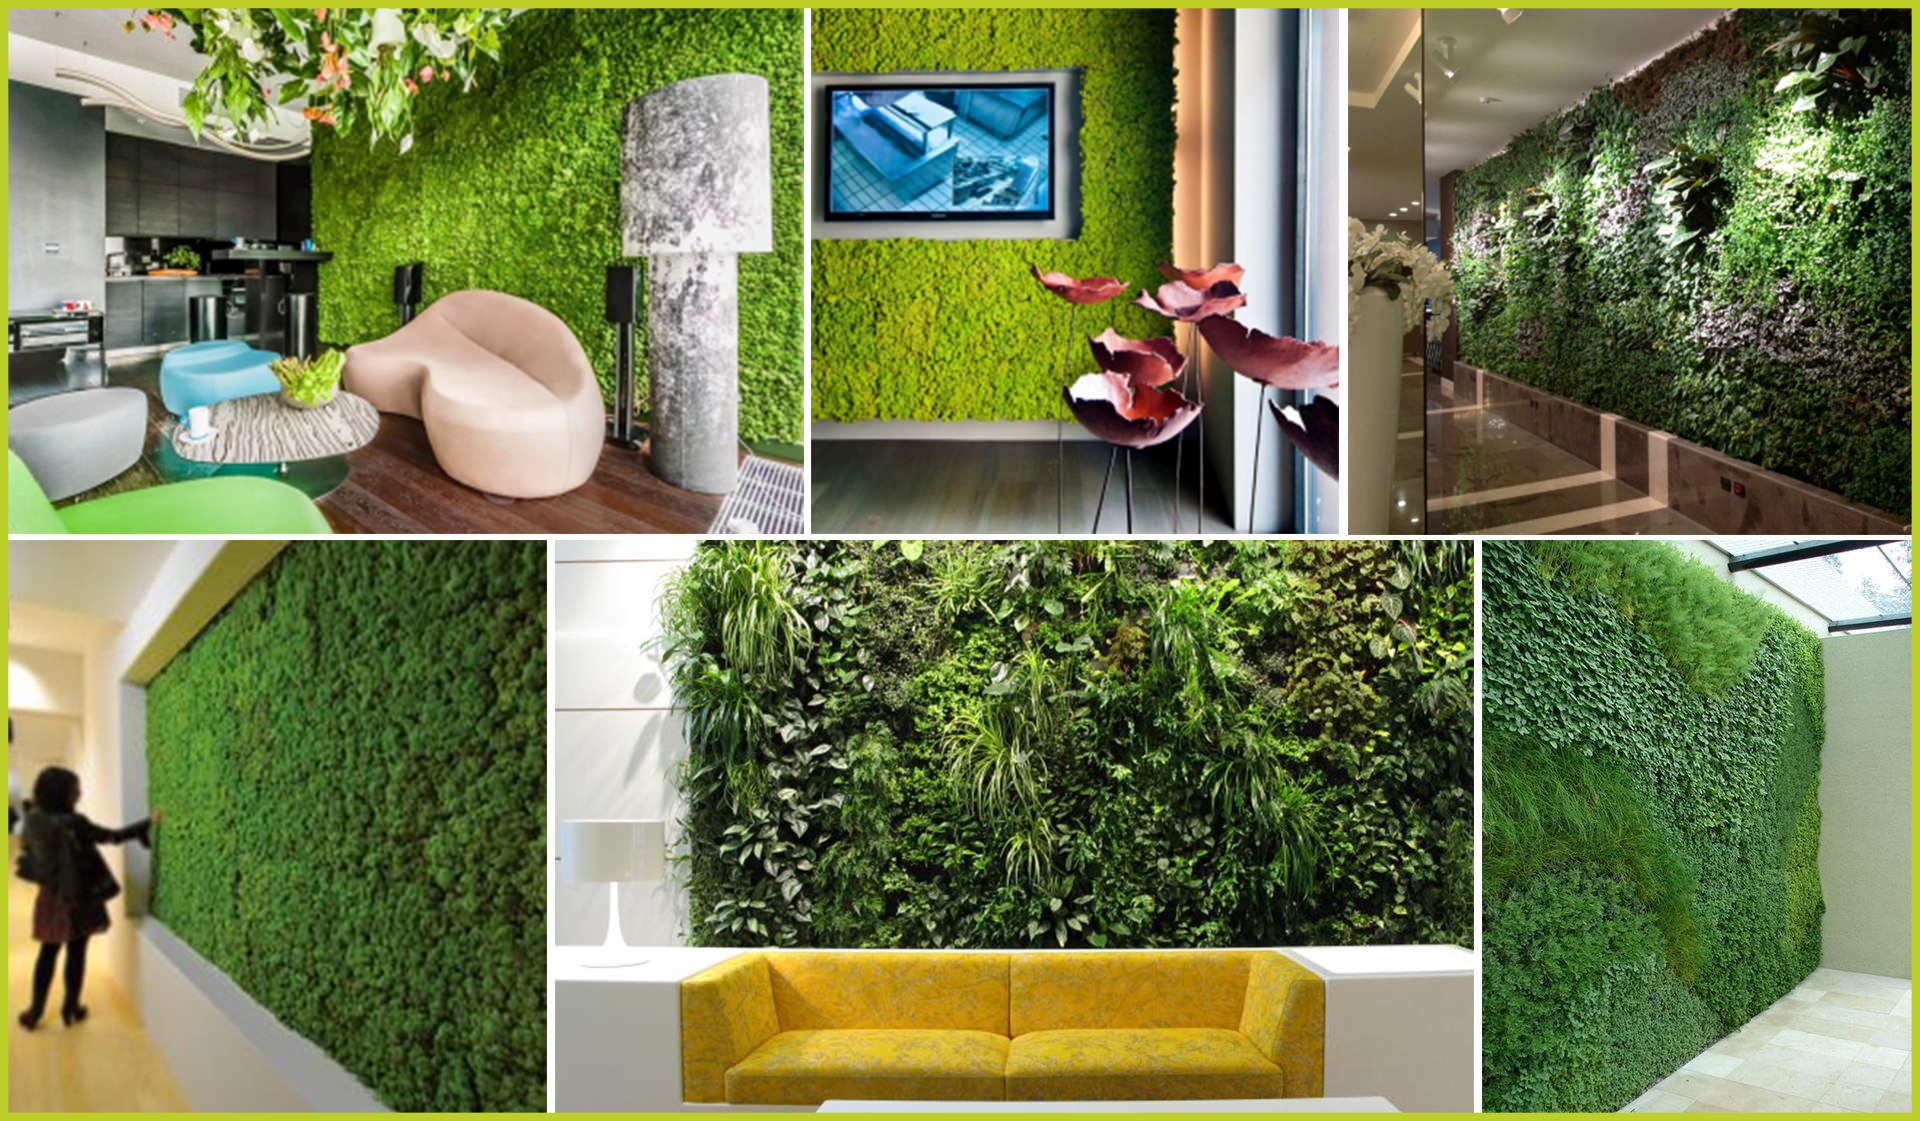 Home En Garden Making Of Vertical Garden 3d Architectural Visualization